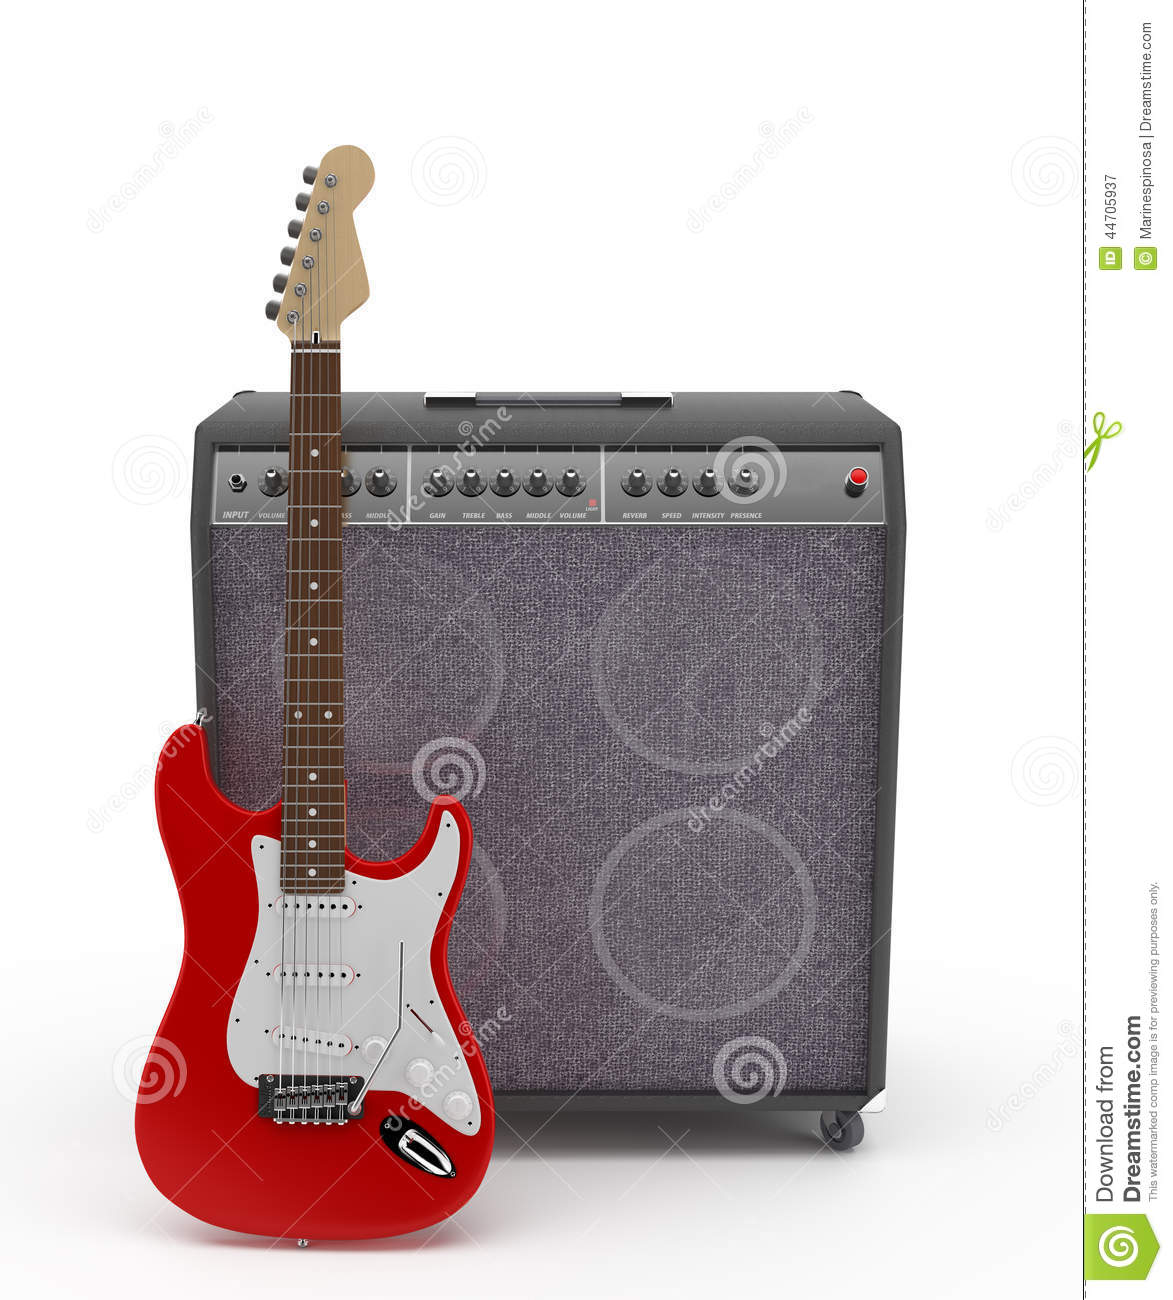 red electric guitar with amplifier stock image image of noise beautiful 44705937. Black Bedroom Furniture Sets. Home Design Ideas